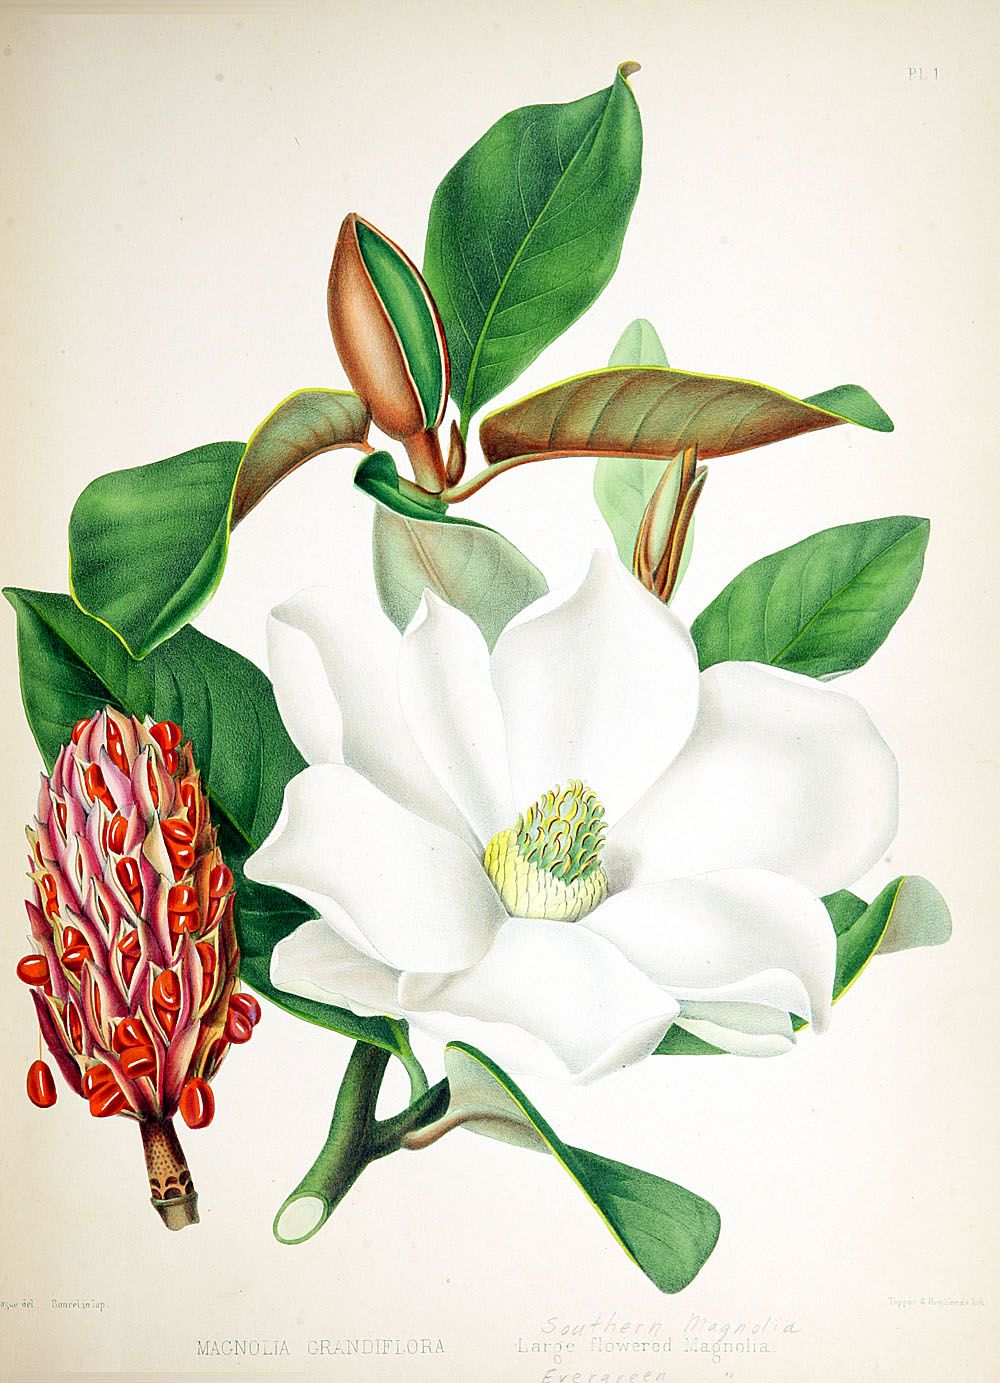 Large Flowered Magnolia Southern Magnolia 39088000610261 0013 Flower Illustration Flower Art Flower Painting